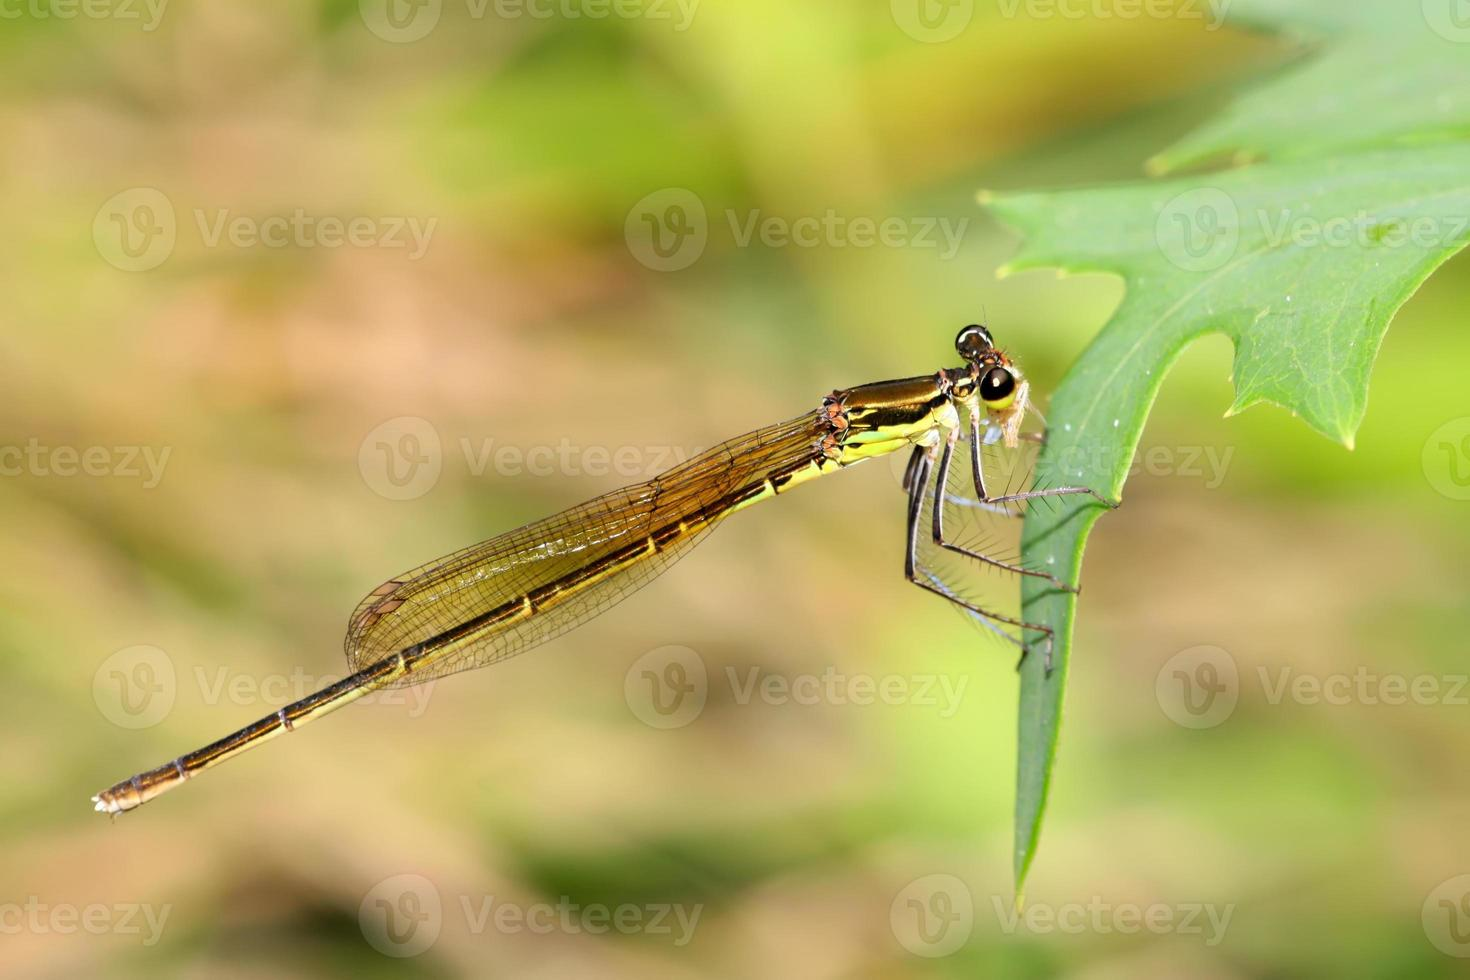 damsel-fly on the grass photo